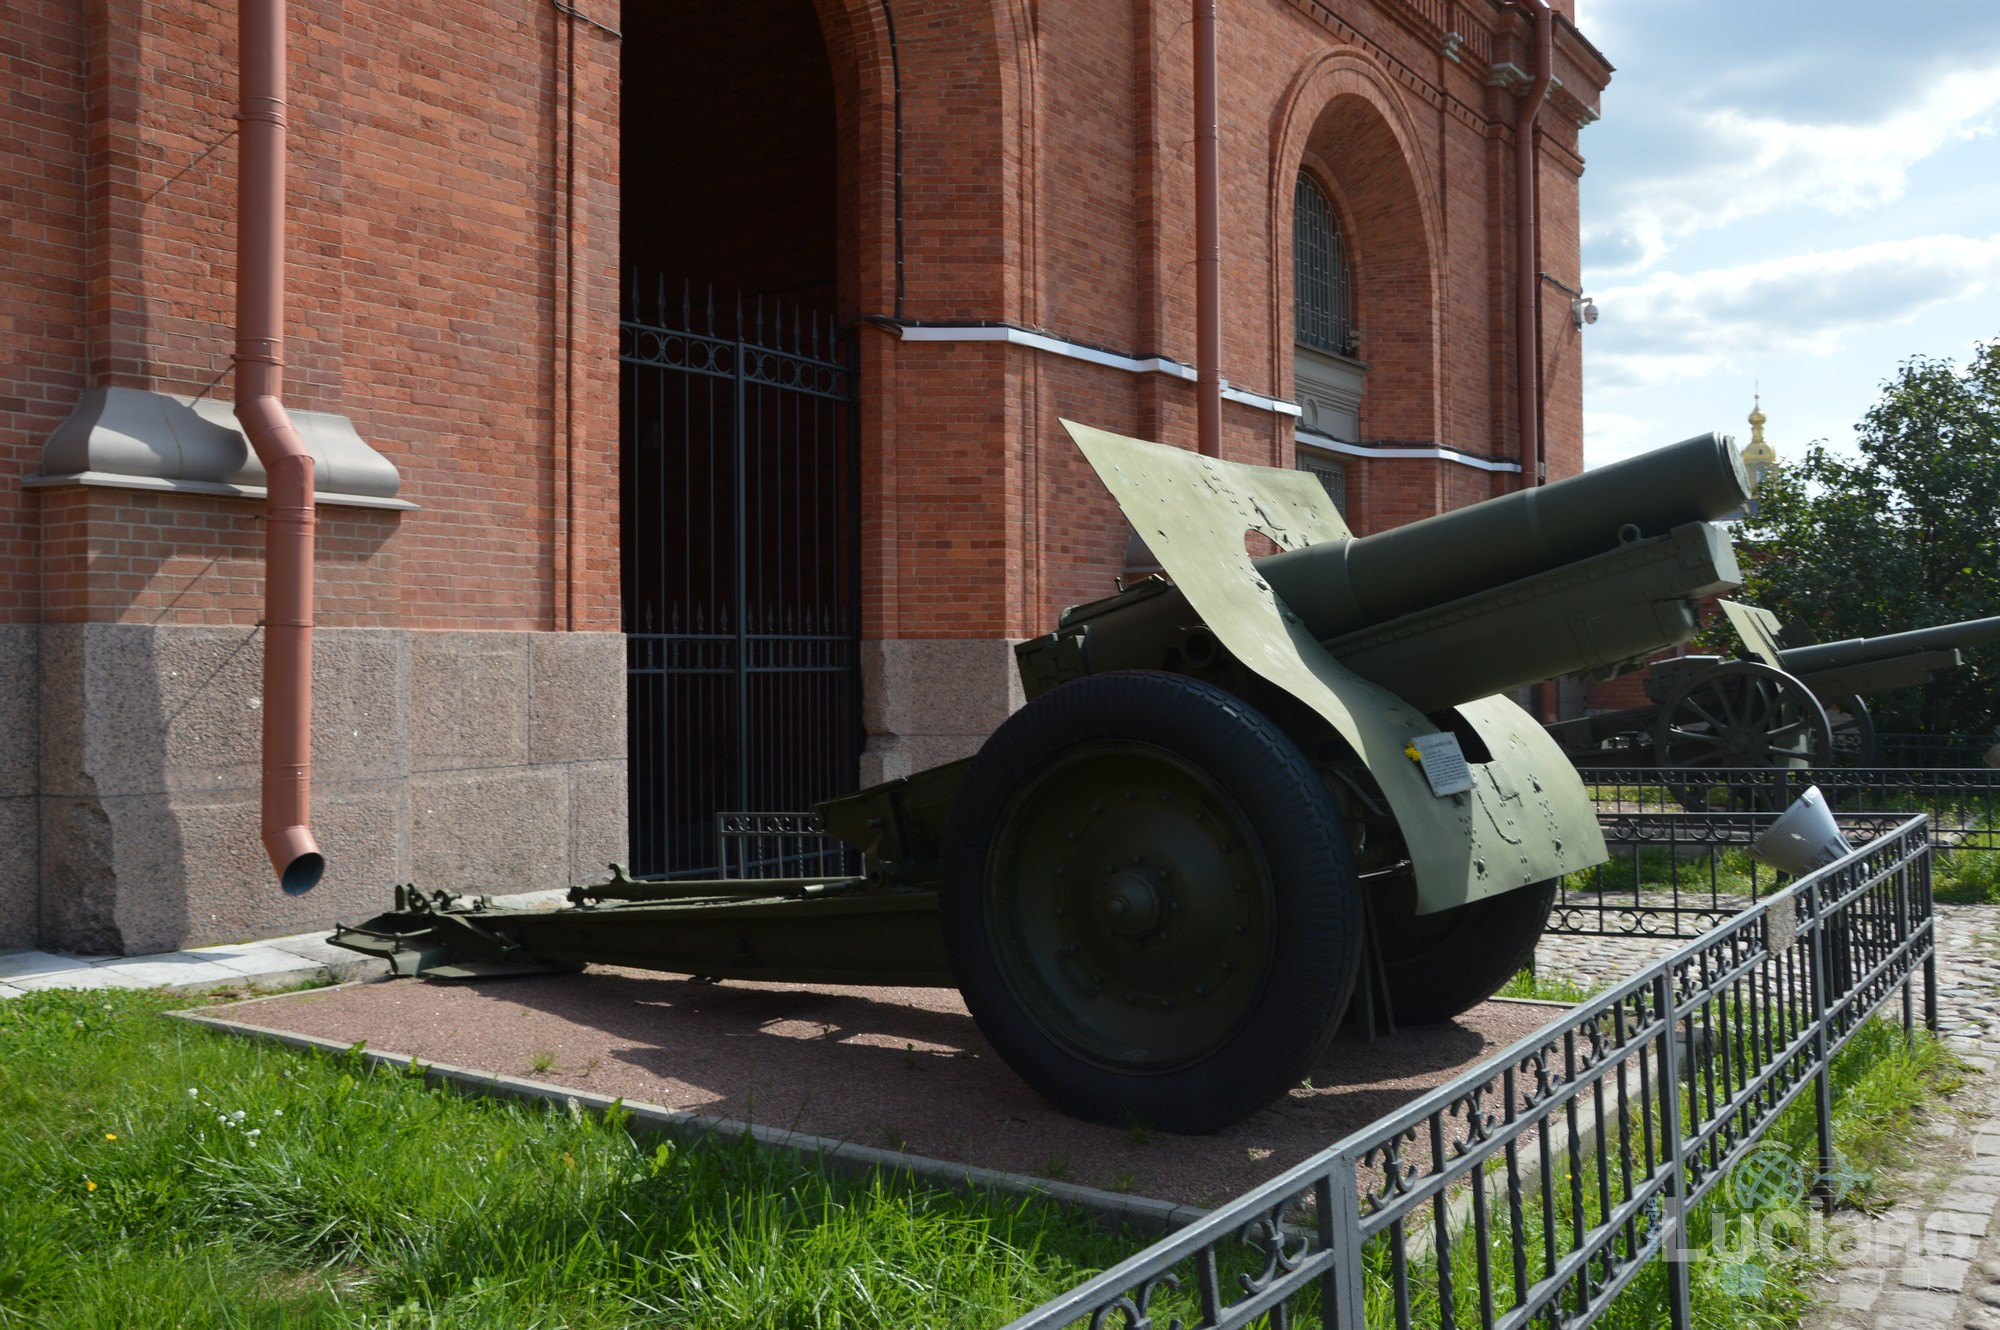 Military-Historical-Museum-of-Artillery-Engineer-and-Signal-Corps-St-Petersburg-Russia-Luciano-Blancato- (24)